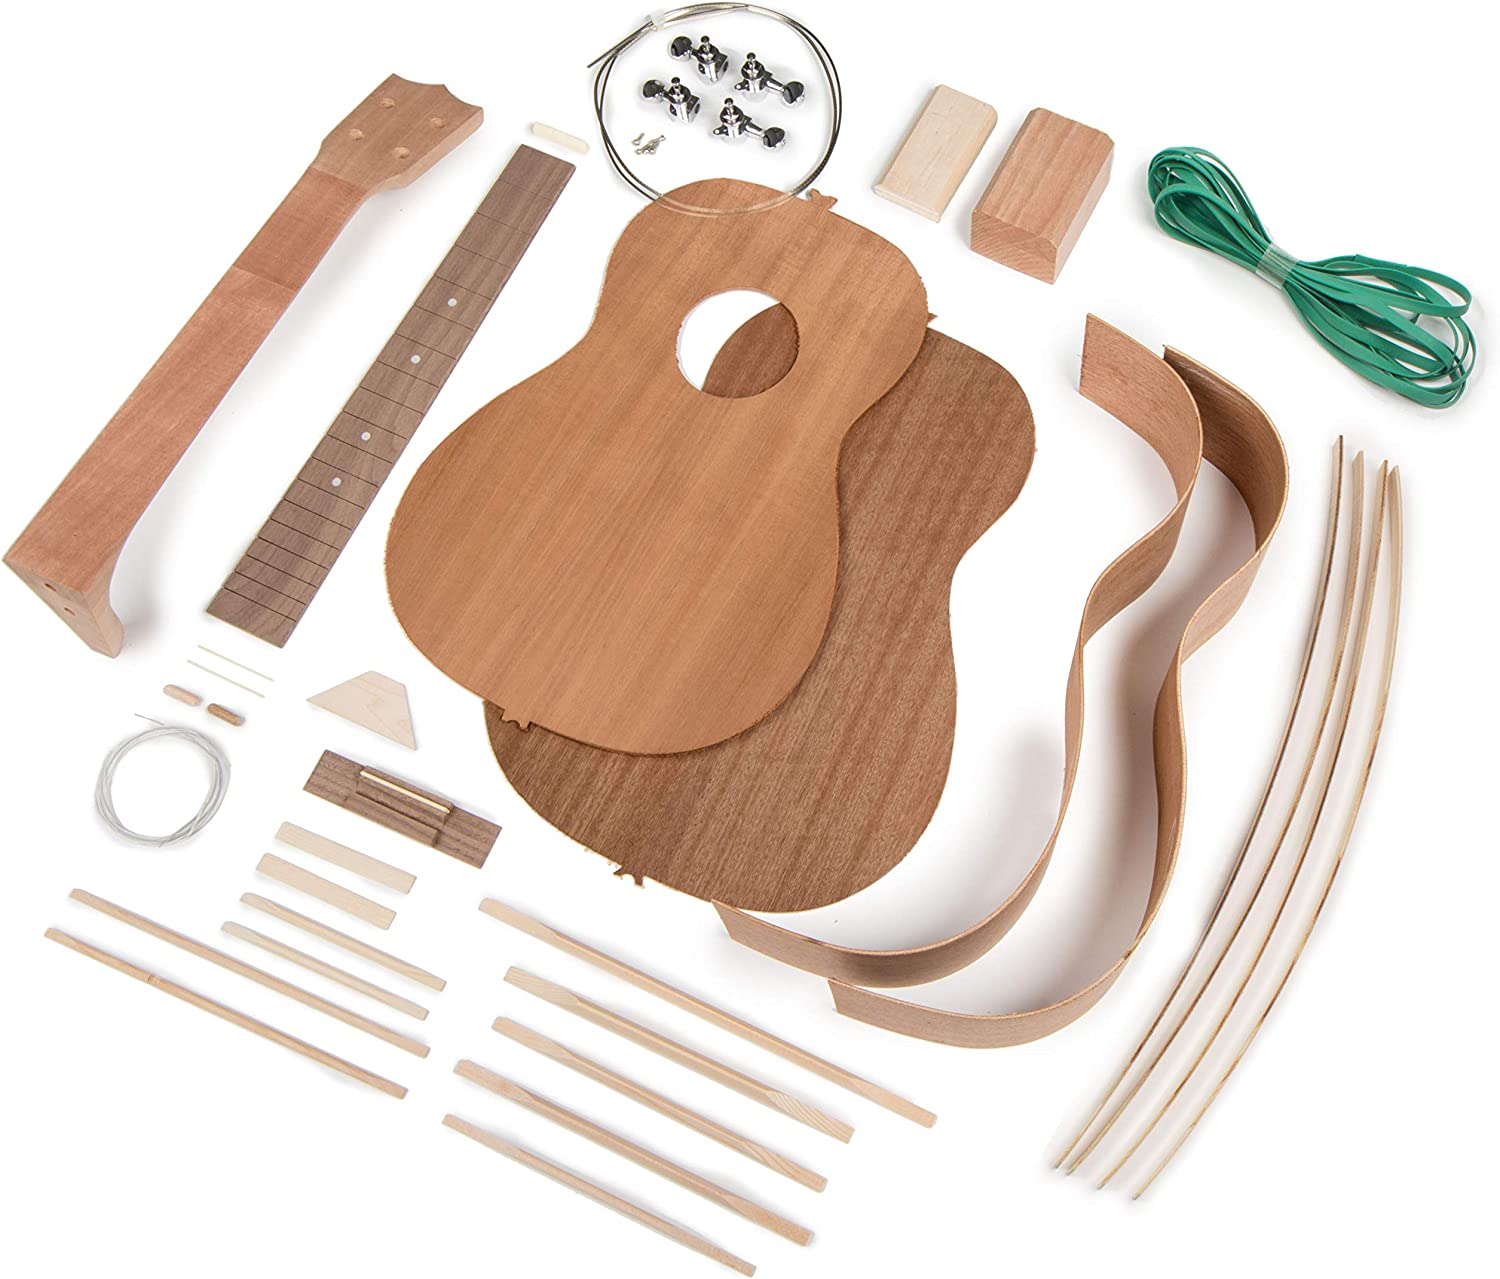 StewMac Build Your latest Own Kit Baritone Ukulele Financial sales sale